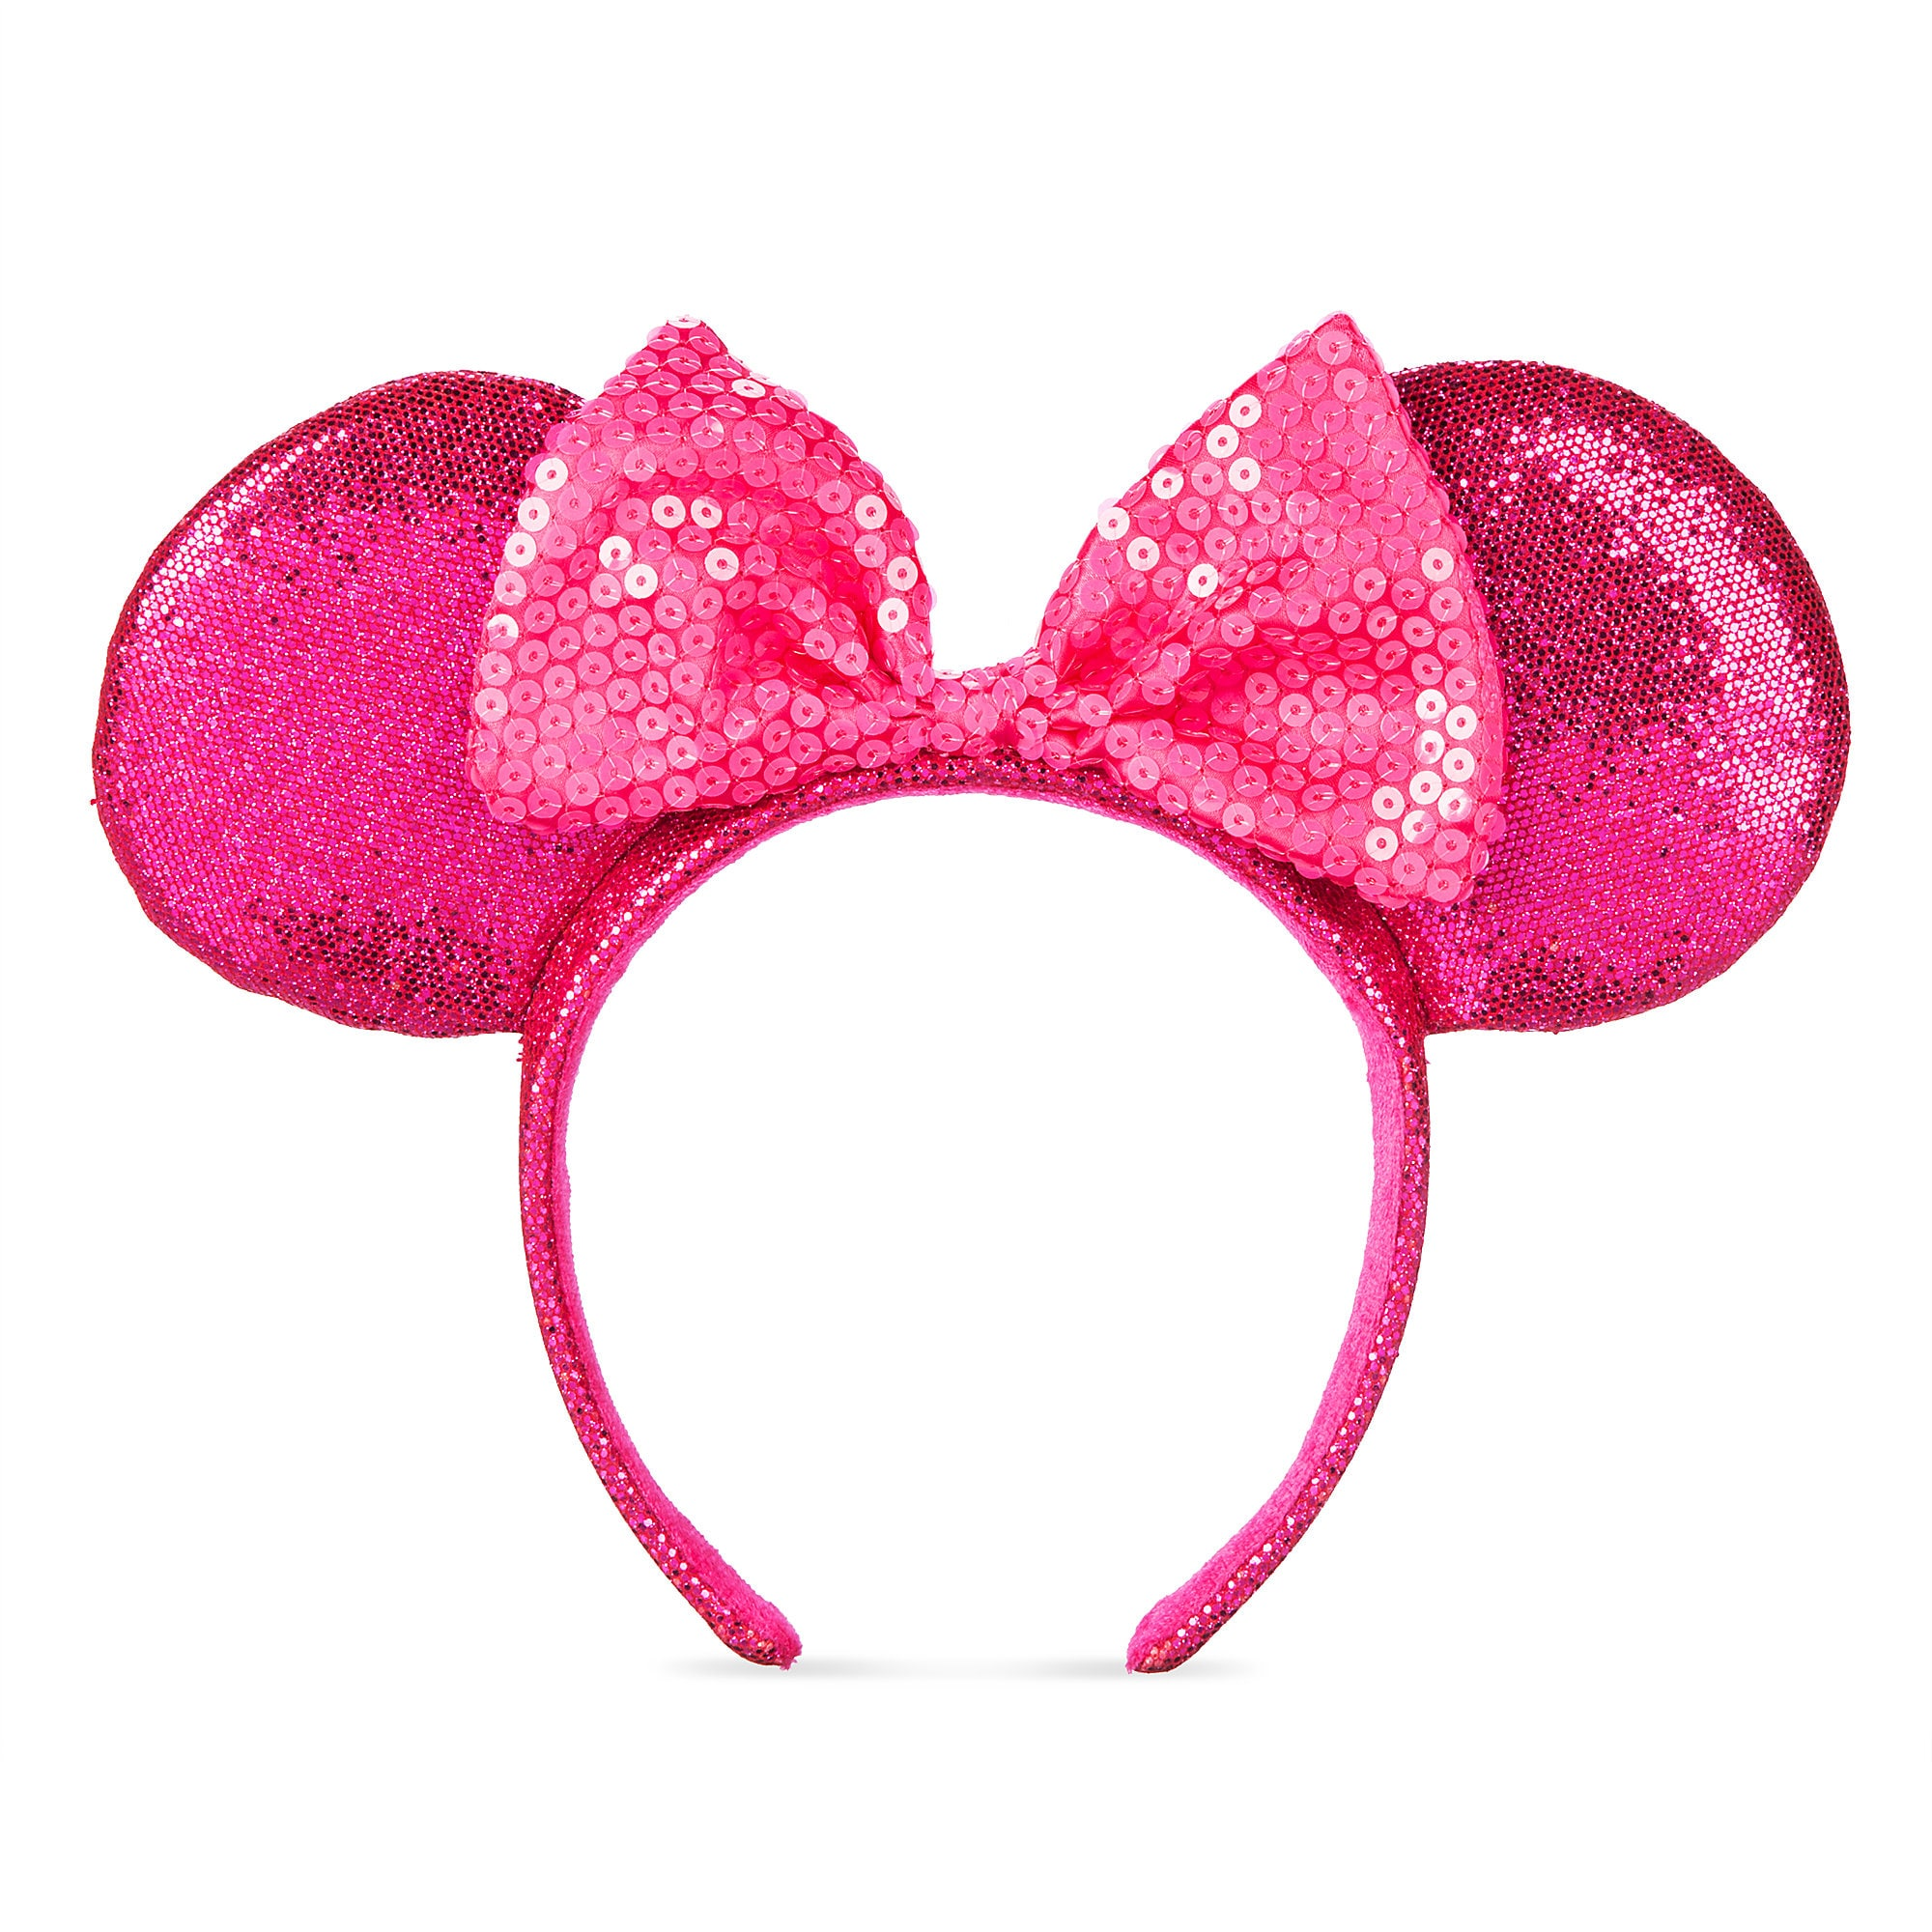 Minnie Mouse Glitter and Sequin Ear Headband - Imagination Pink